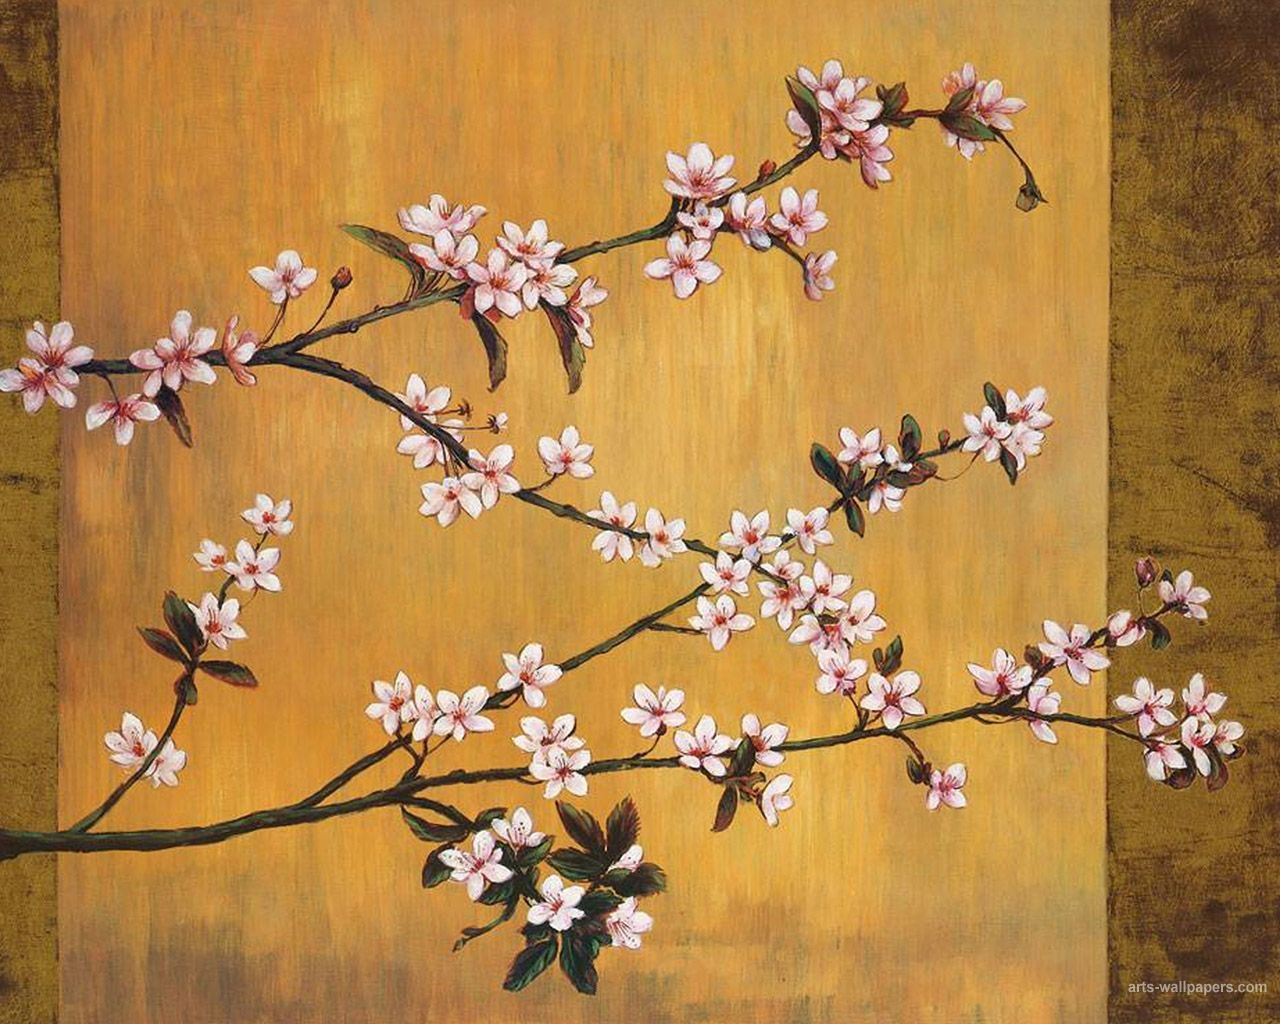 3 Cherry Blossoms Cherry Blossom Wallpaper Cherry Blossom Painting Blossoms Art